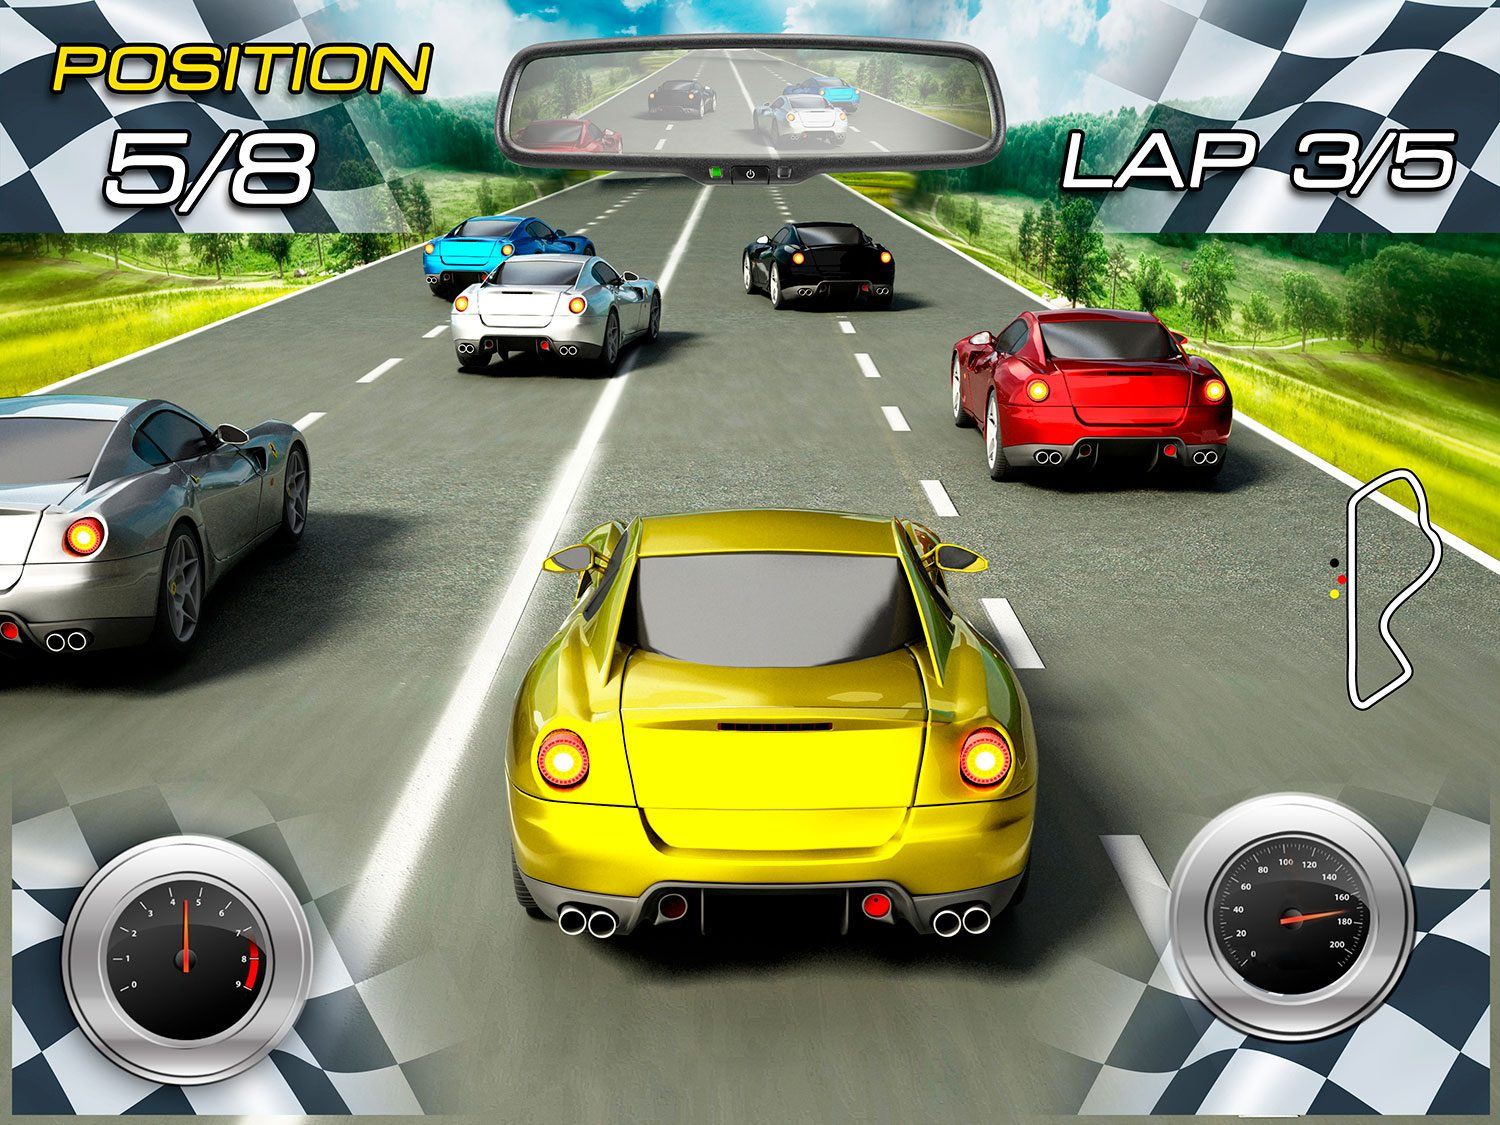 Wall Murals: Car Racing Video Game